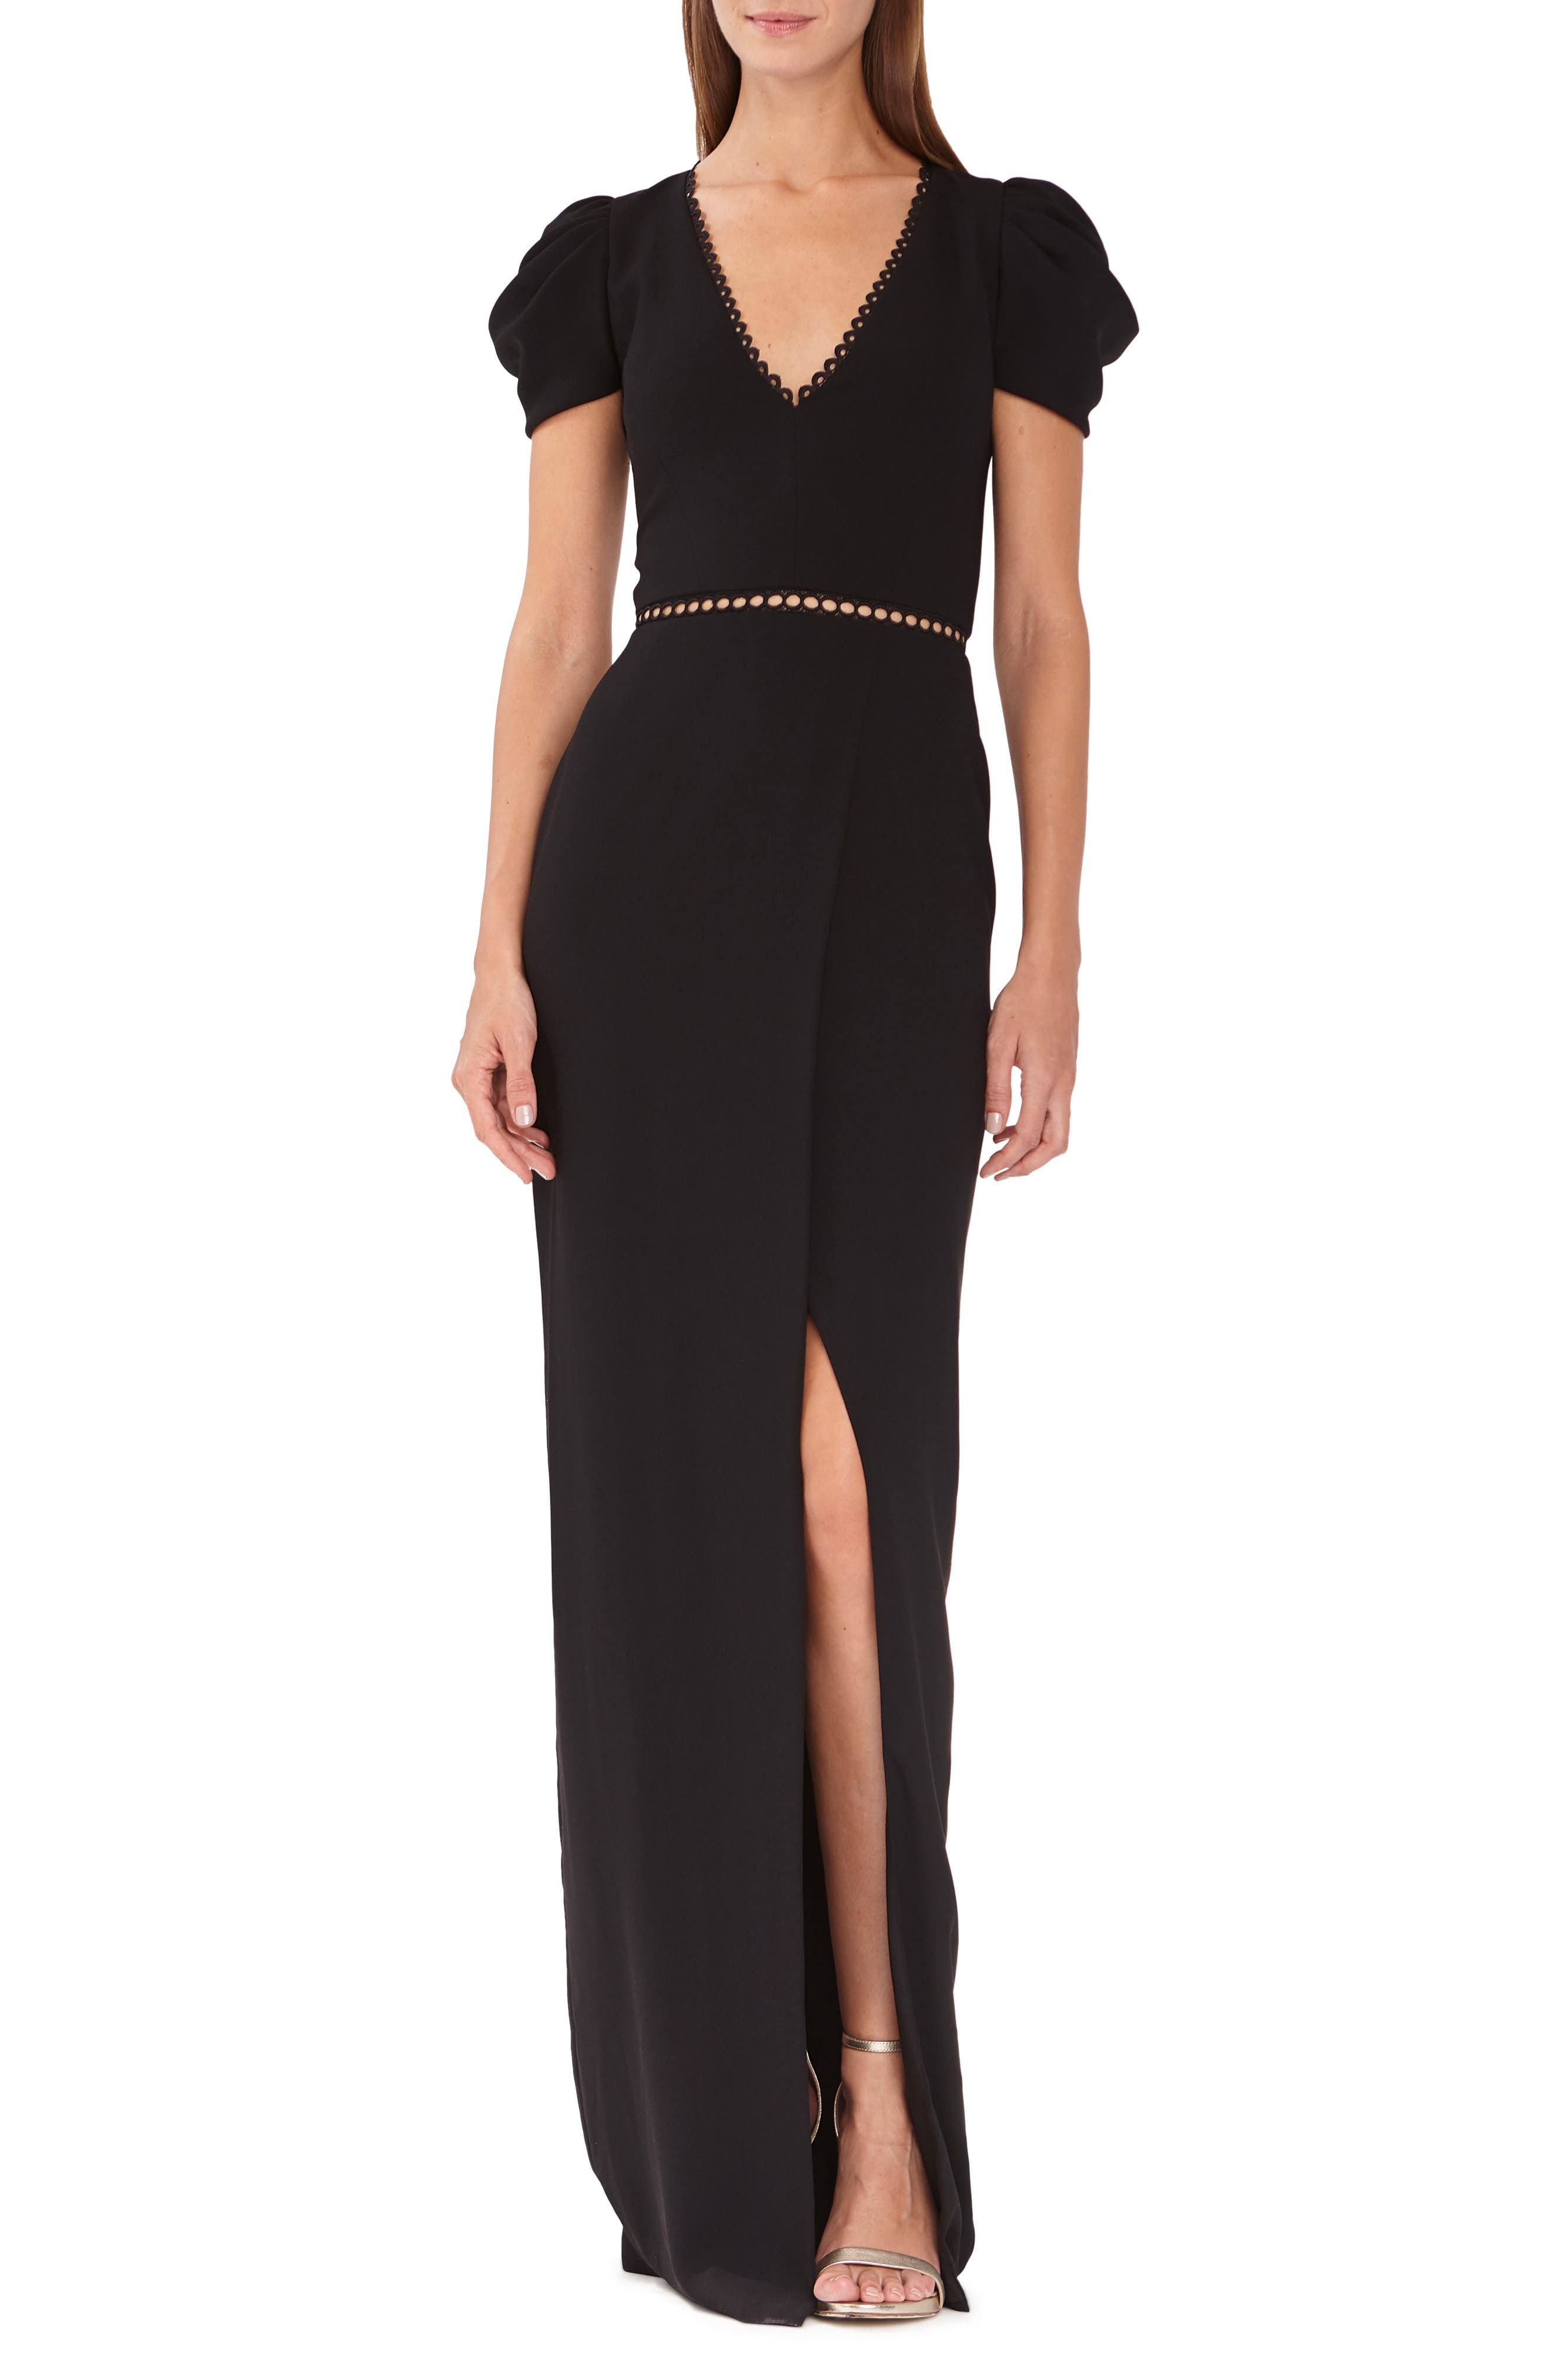 Ml Monique Lhuillier Draped Sleeve Crepe Evening Dress, Black